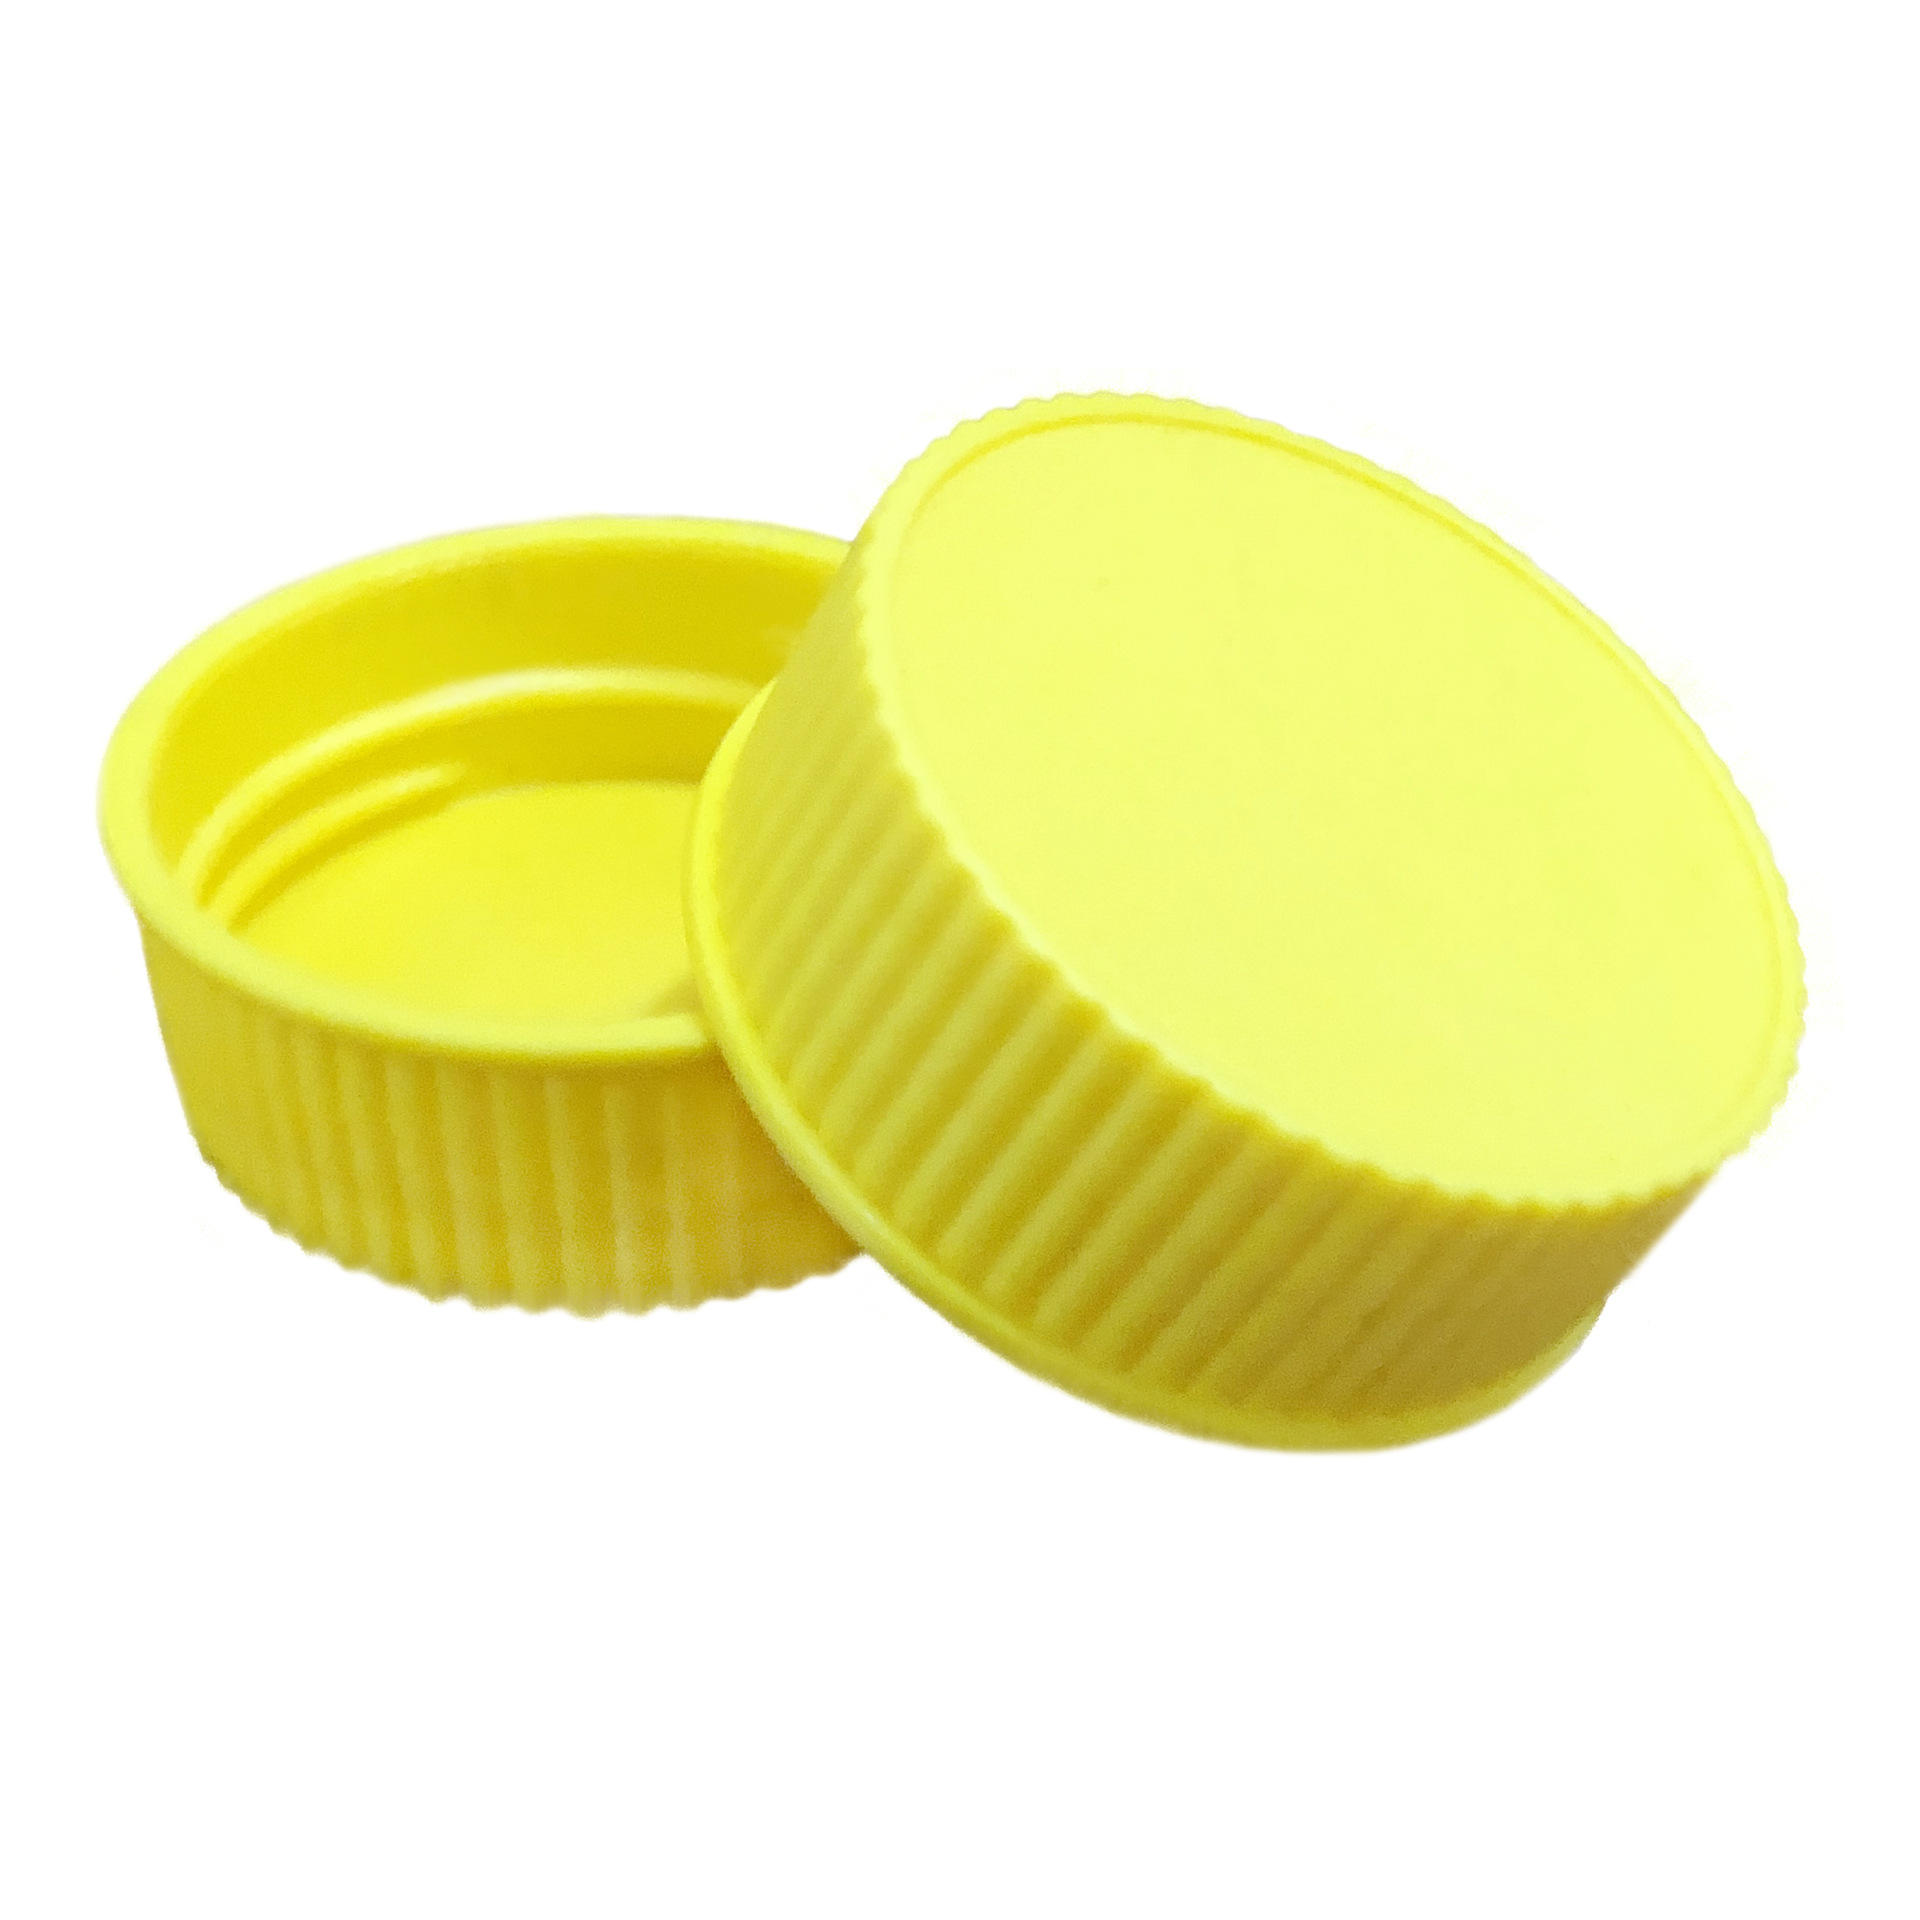 Drum Sluiting Plug Cover <span class=keywords><strong>Plastic</strong></span> 2Inch En 3/4Inch Custom Wit Set Aangepaste China Logo Cap <span class=keywords><strong>Caps</strong></span>